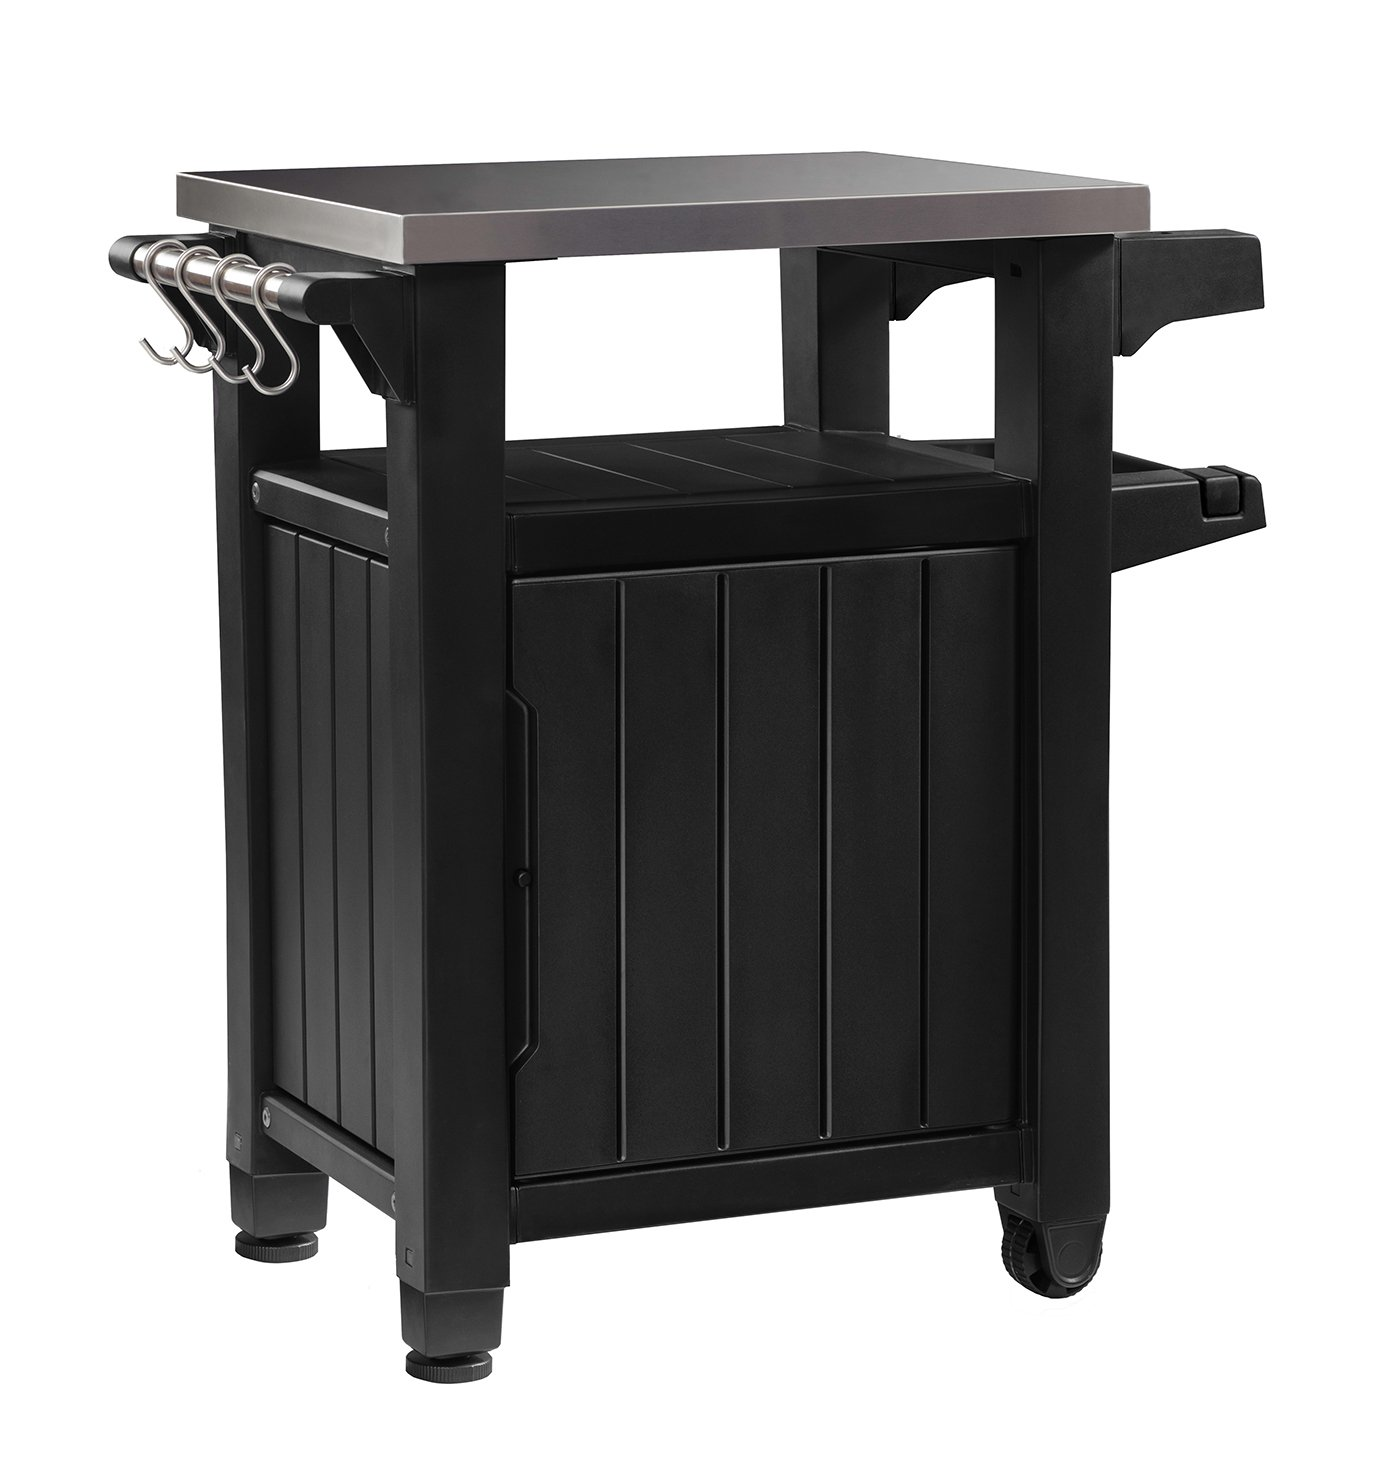 Keter 230852 Unity Bbq Cart Prep Table, Graphite